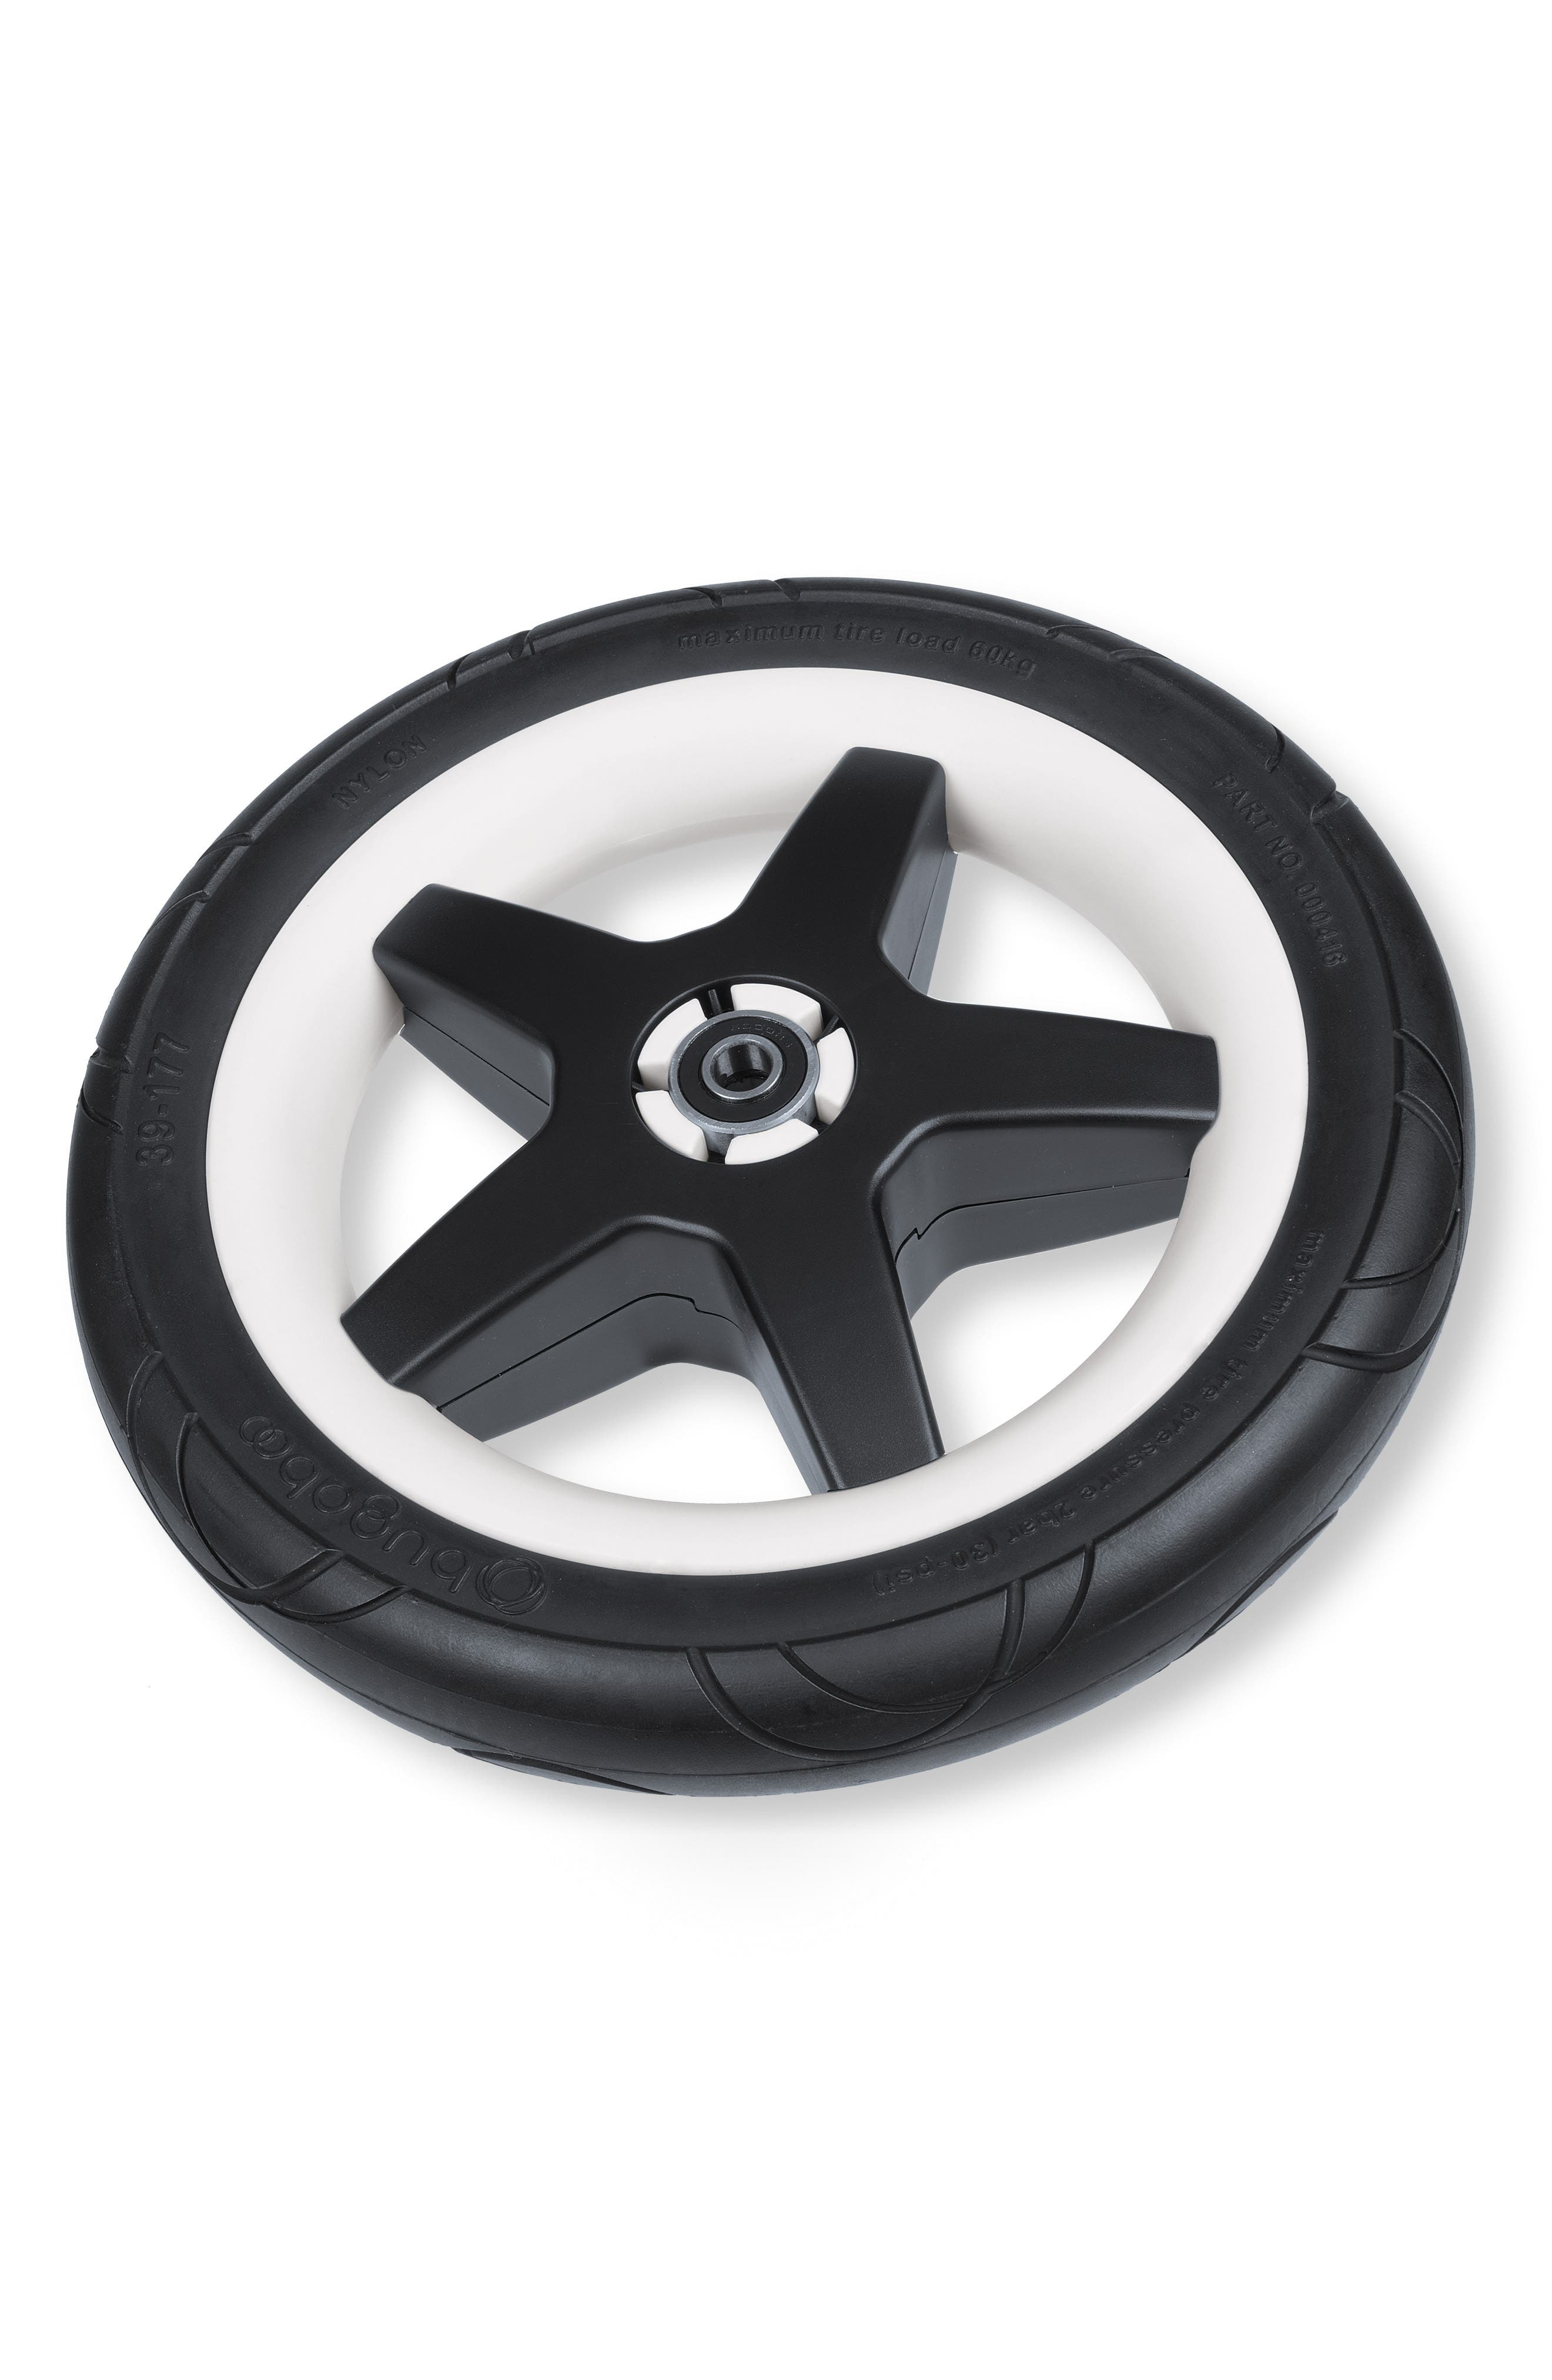 4-Piece Foam Wheel Set for Donkey Series Strollers,                             Alternate thumbnail 2, color,                             Black